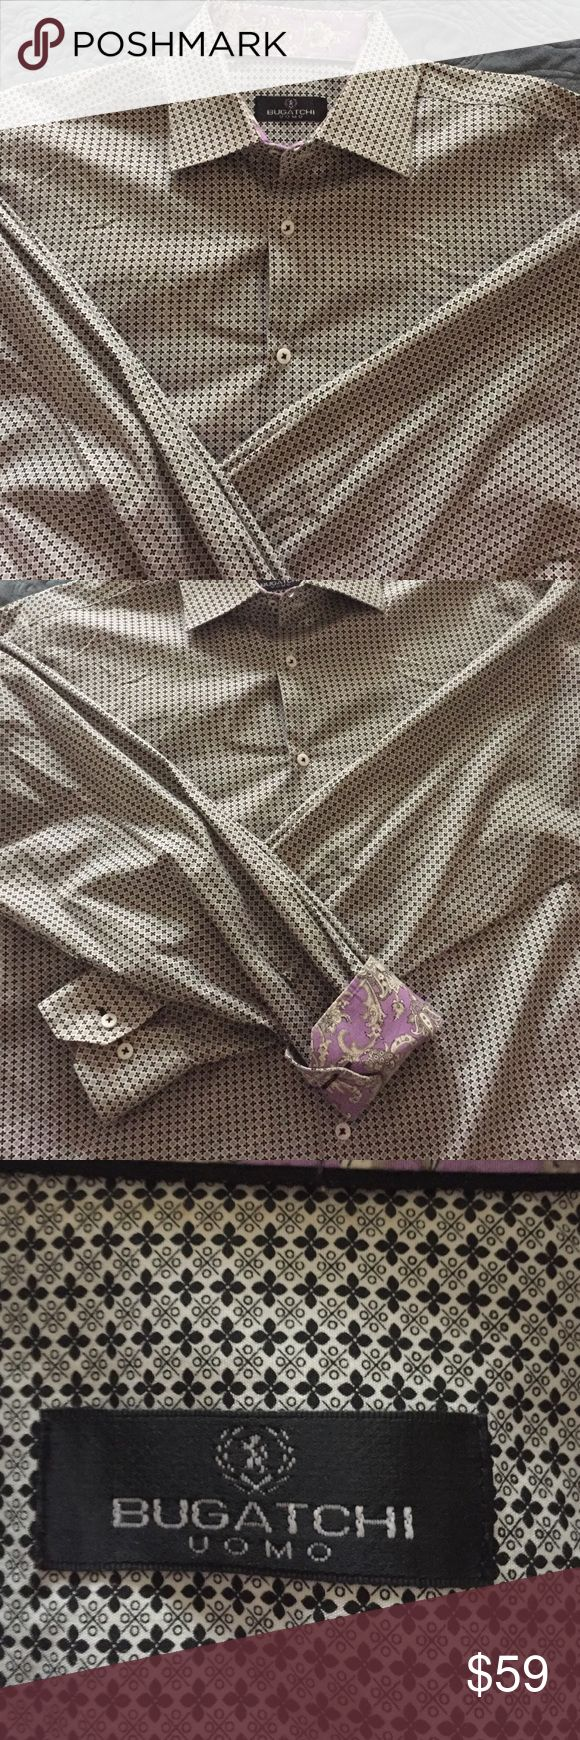 Men's Bugatchi Shirt Size XL This shirt is Ah-Mazing !! Men's Bugatchi Button Down Shirt • Size XL • Black and White with Purple and White paisley inside collar and chuffed • Worn once and just back from being professionally dry cleaned • 100 % Cotton • Originally paid $225 for this shirt • My husband has lost weight above sure to keep checking back as we add new items • Free Shipping for all orders of $40 or more ..just comment if doing a free shipping item or bundle so I can set it up for…